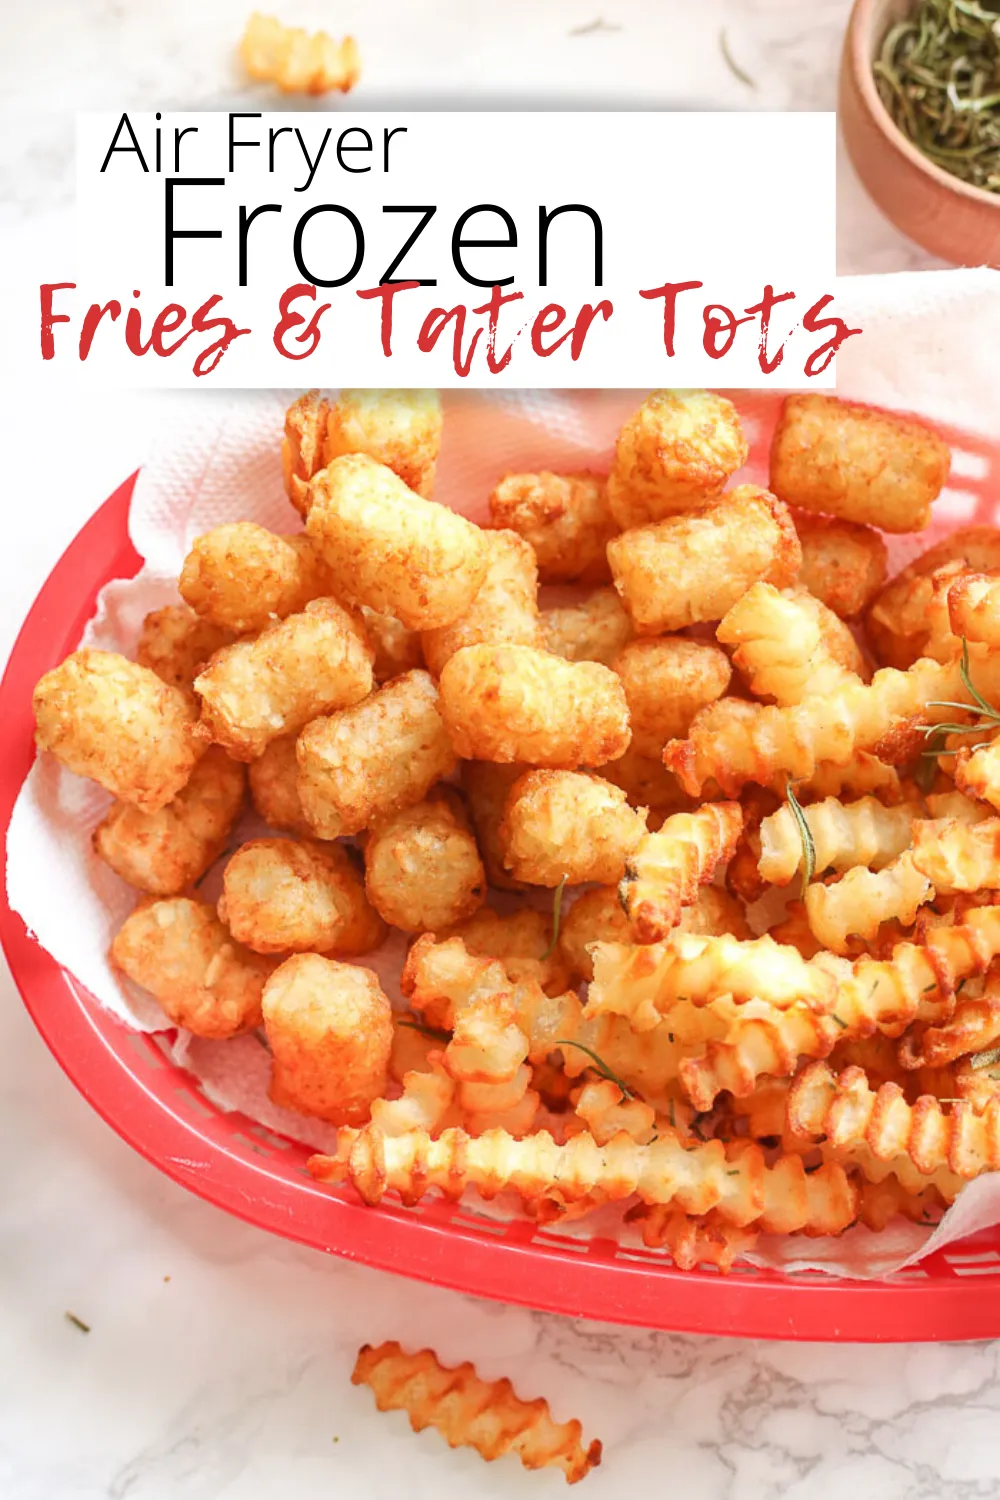 Air Fryer Frozen French Fries & Frozen Tater Tots Recipe